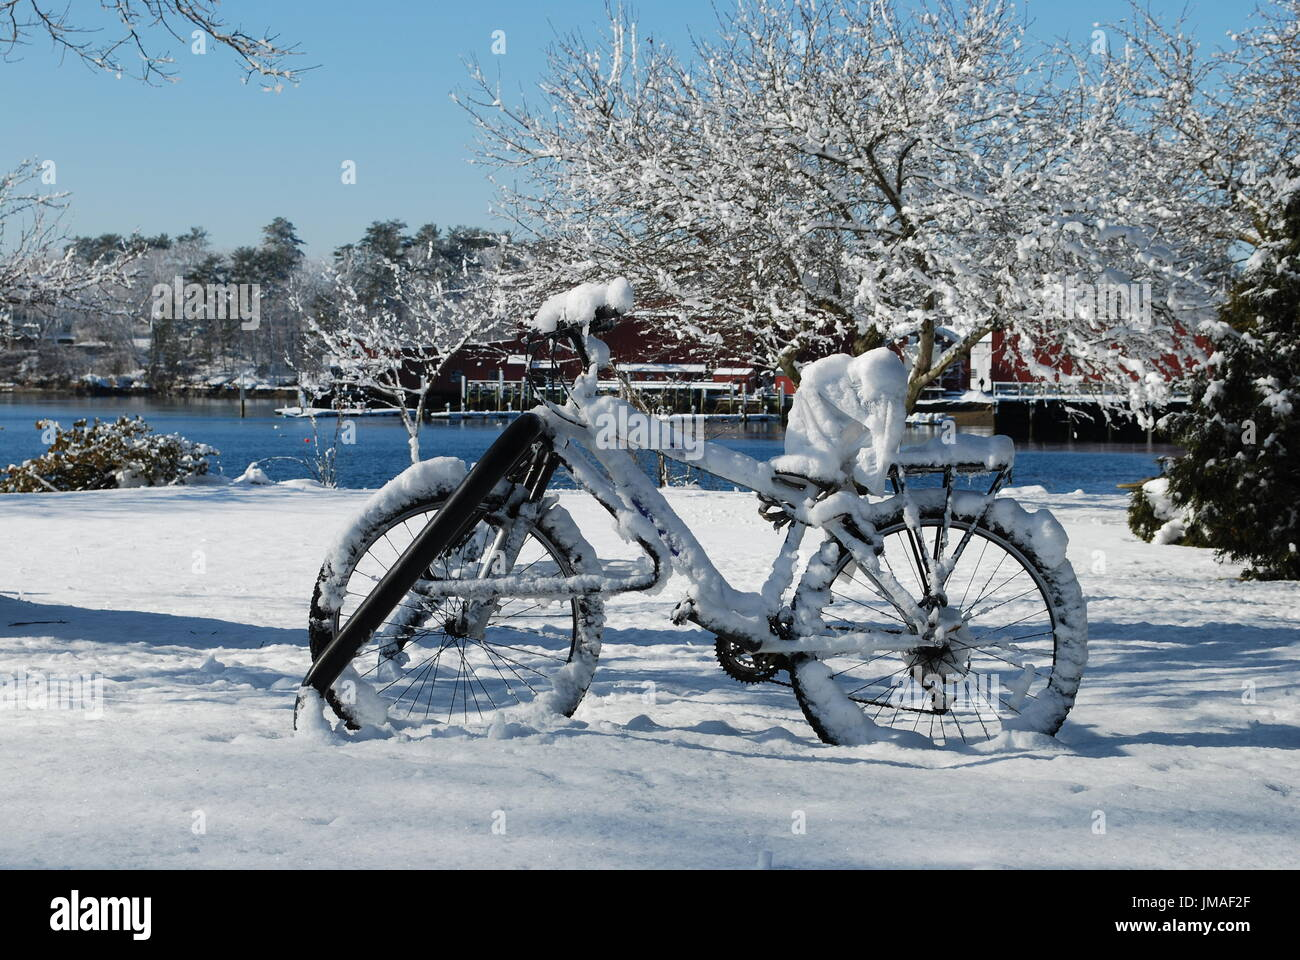 Snow covered bicycle - Stock Image